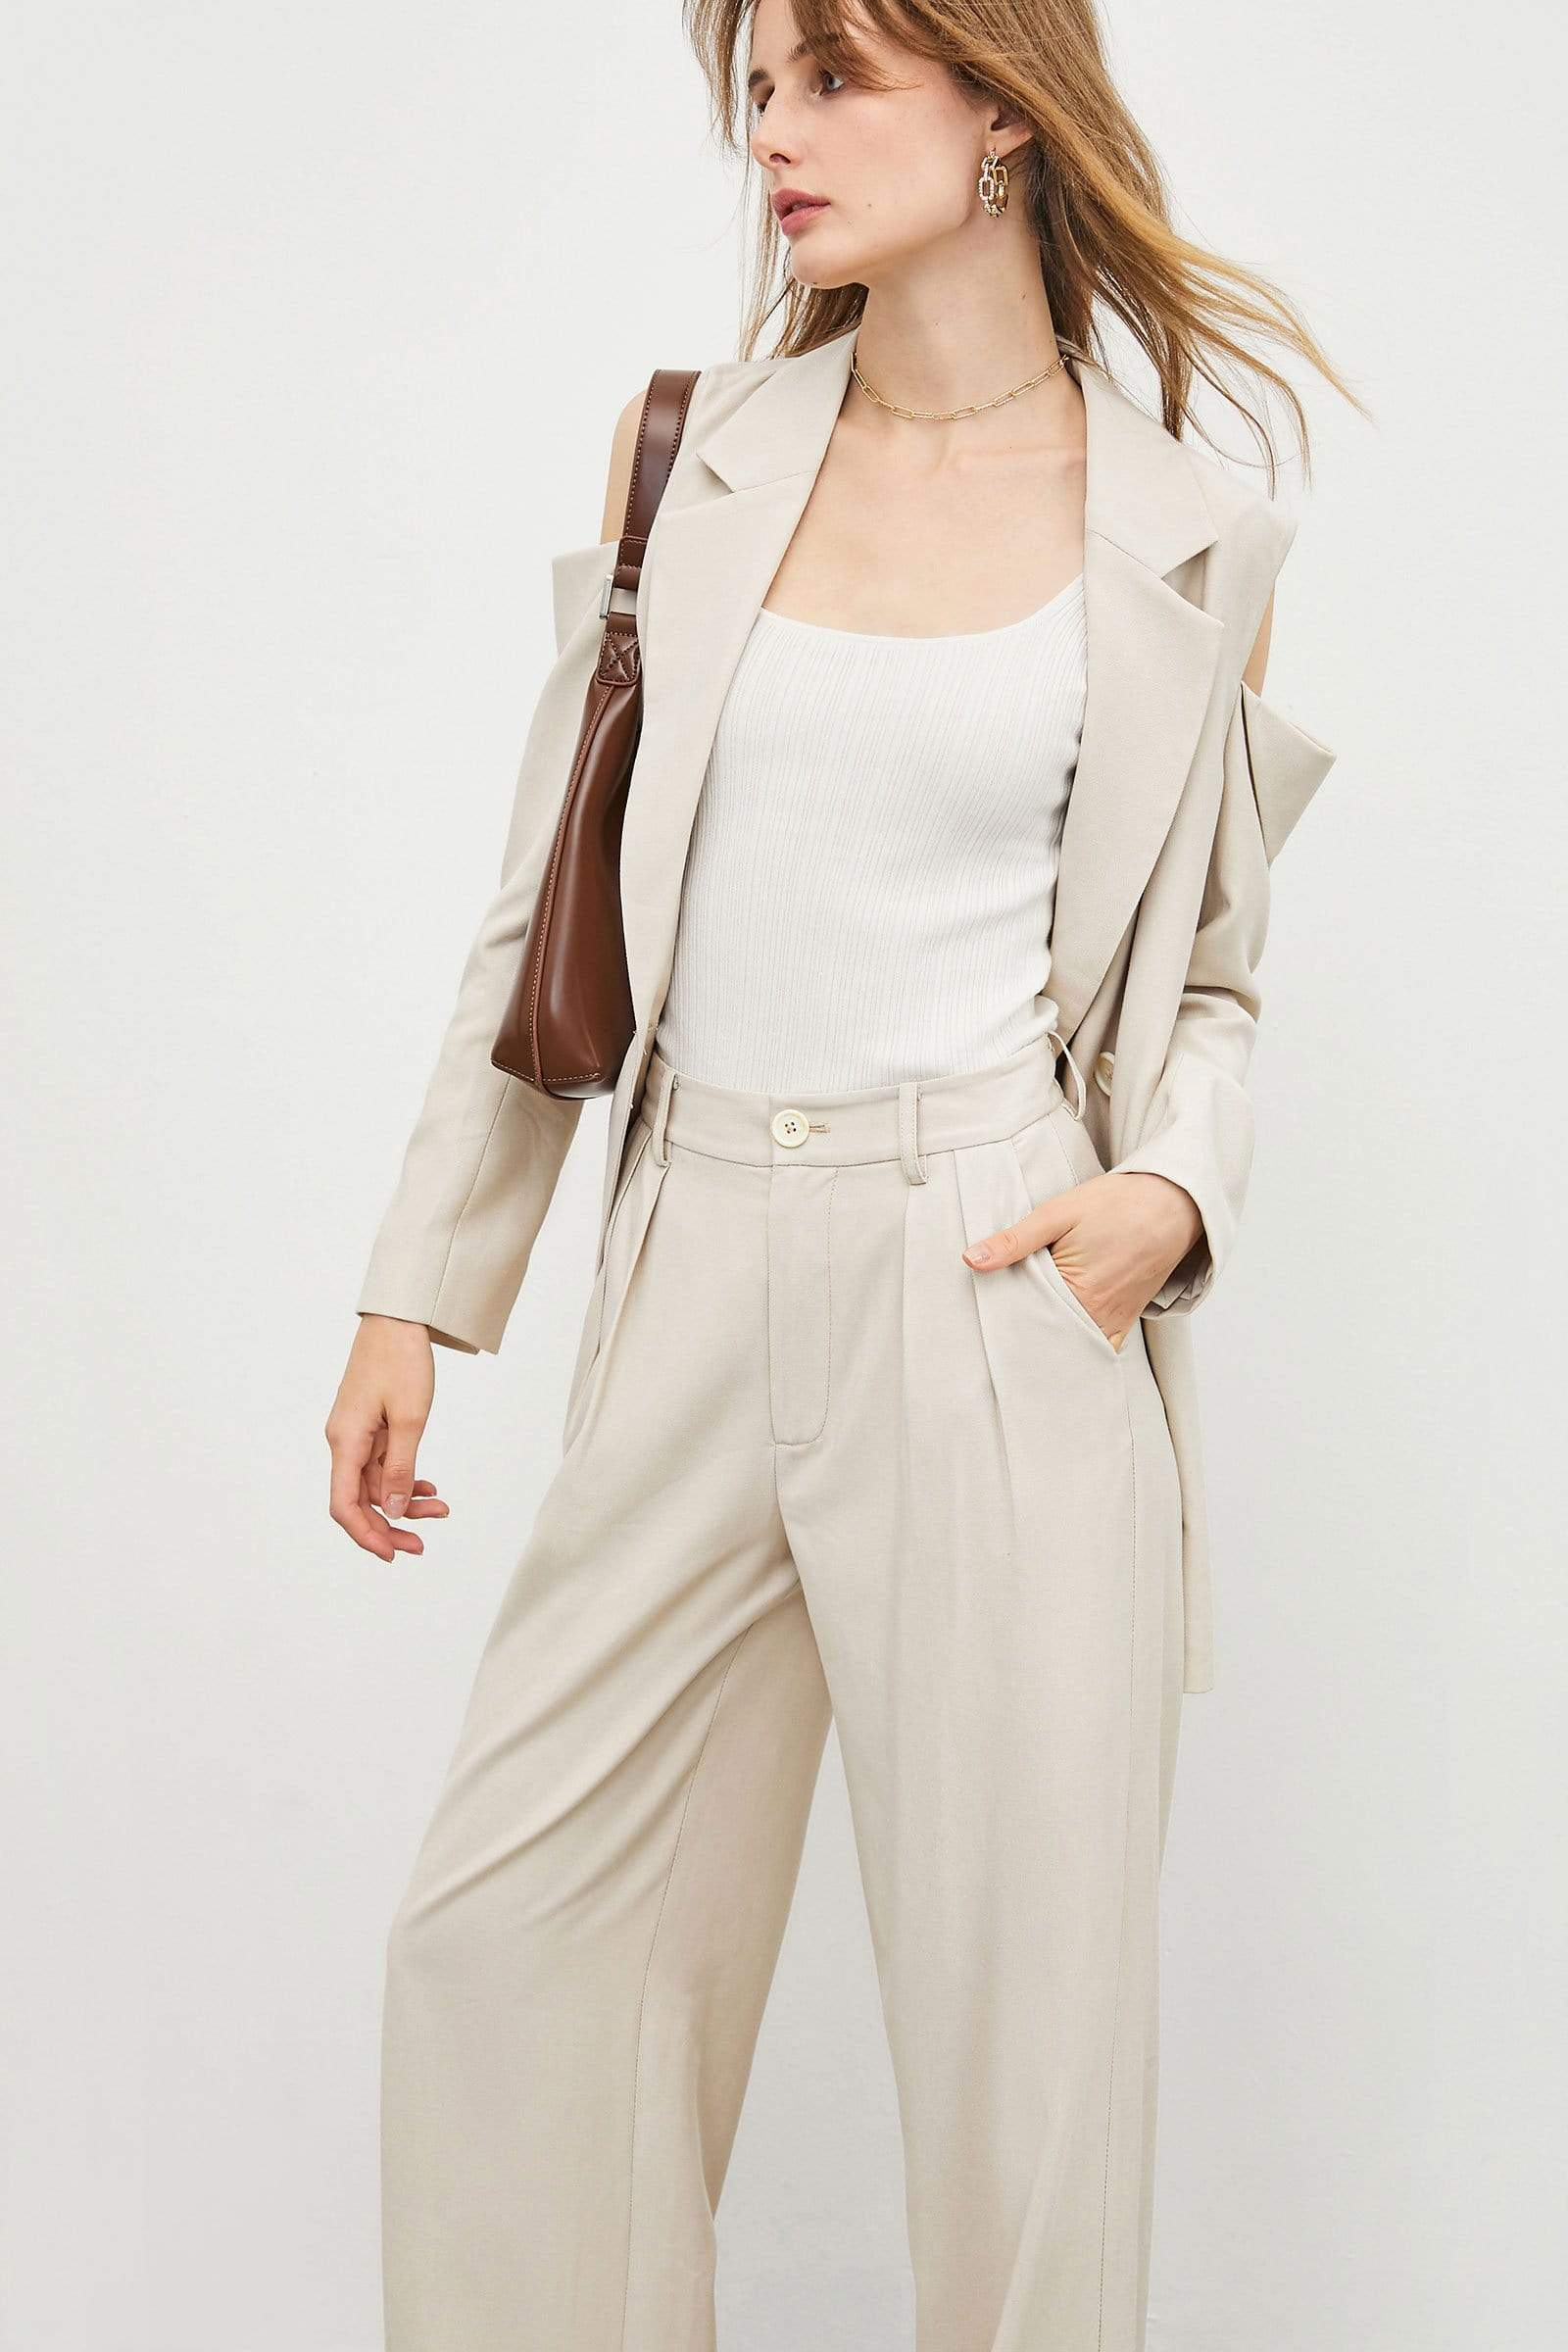 Business Essential Beige Slacks